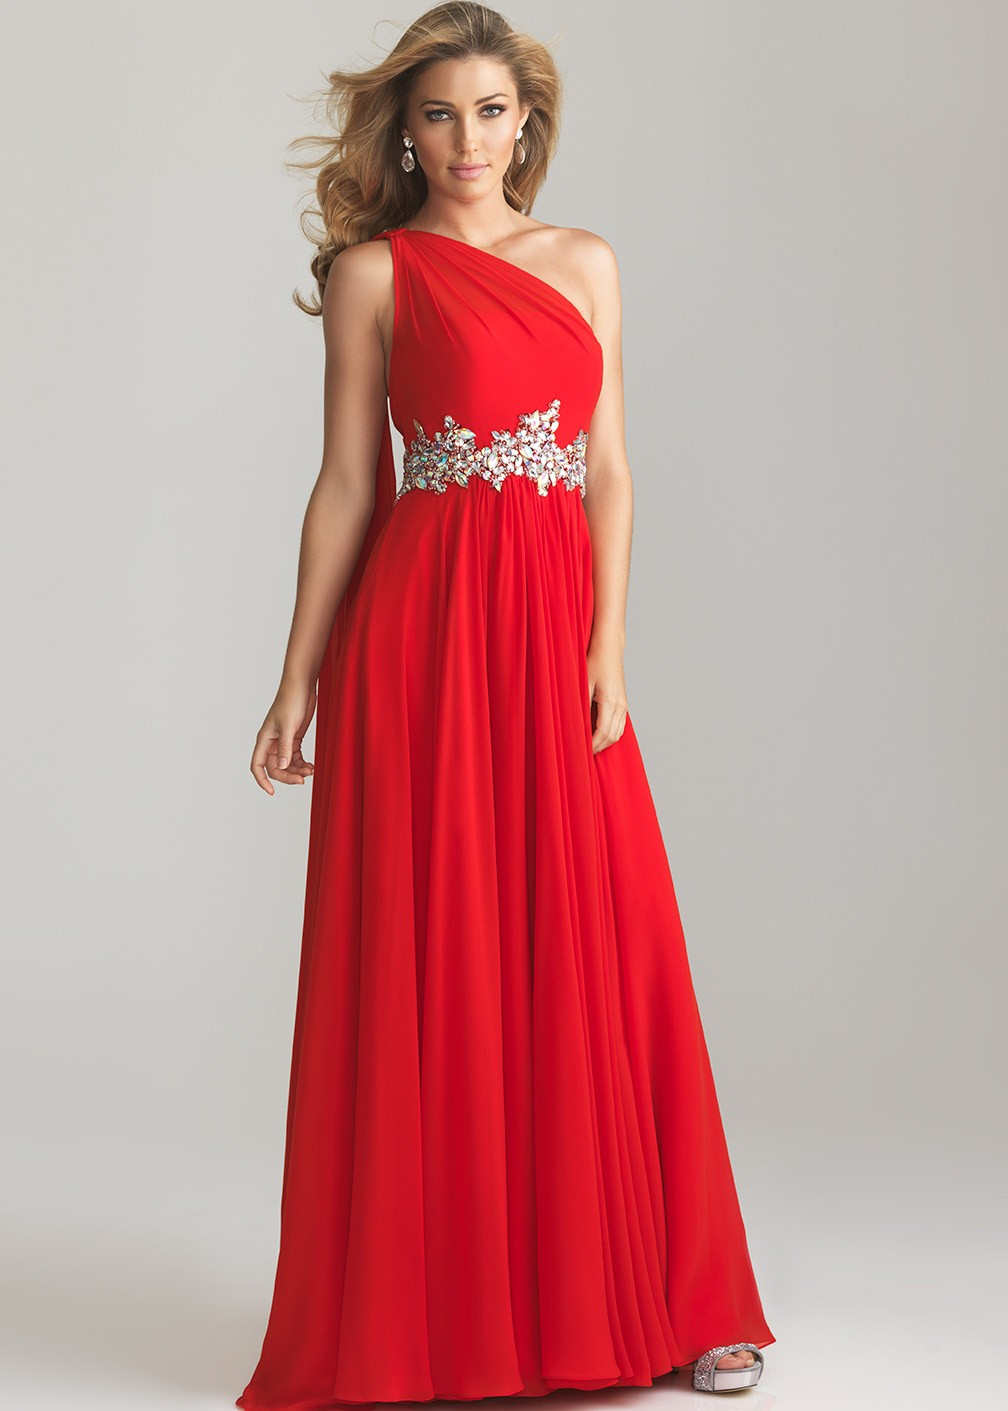 - Red One Shoulder Evening Gown  Prom Dresses 2013 - RissyRoos comRed One Shoulder Prom Dresses 2013